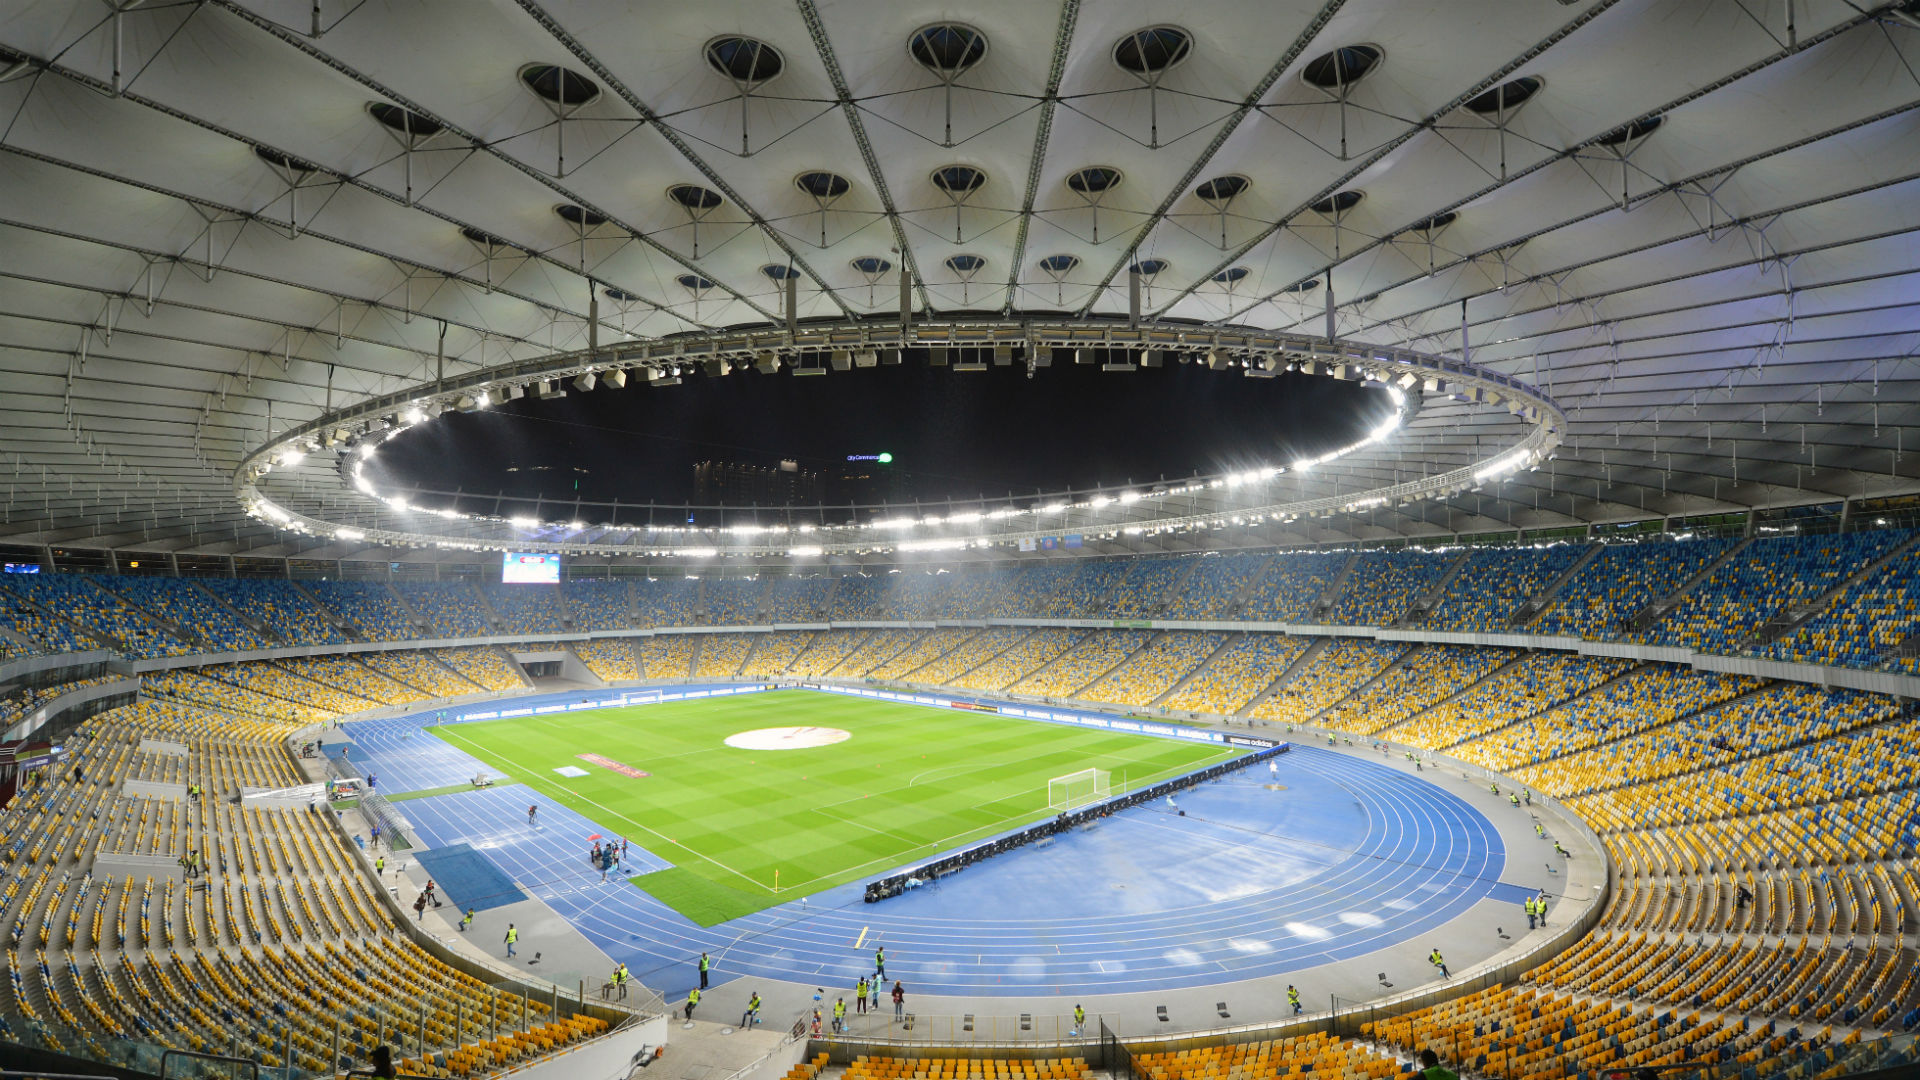 Dyn. Kiev VS Partizan ( BETTING TIPS, Match Preview & Expert Analysis )